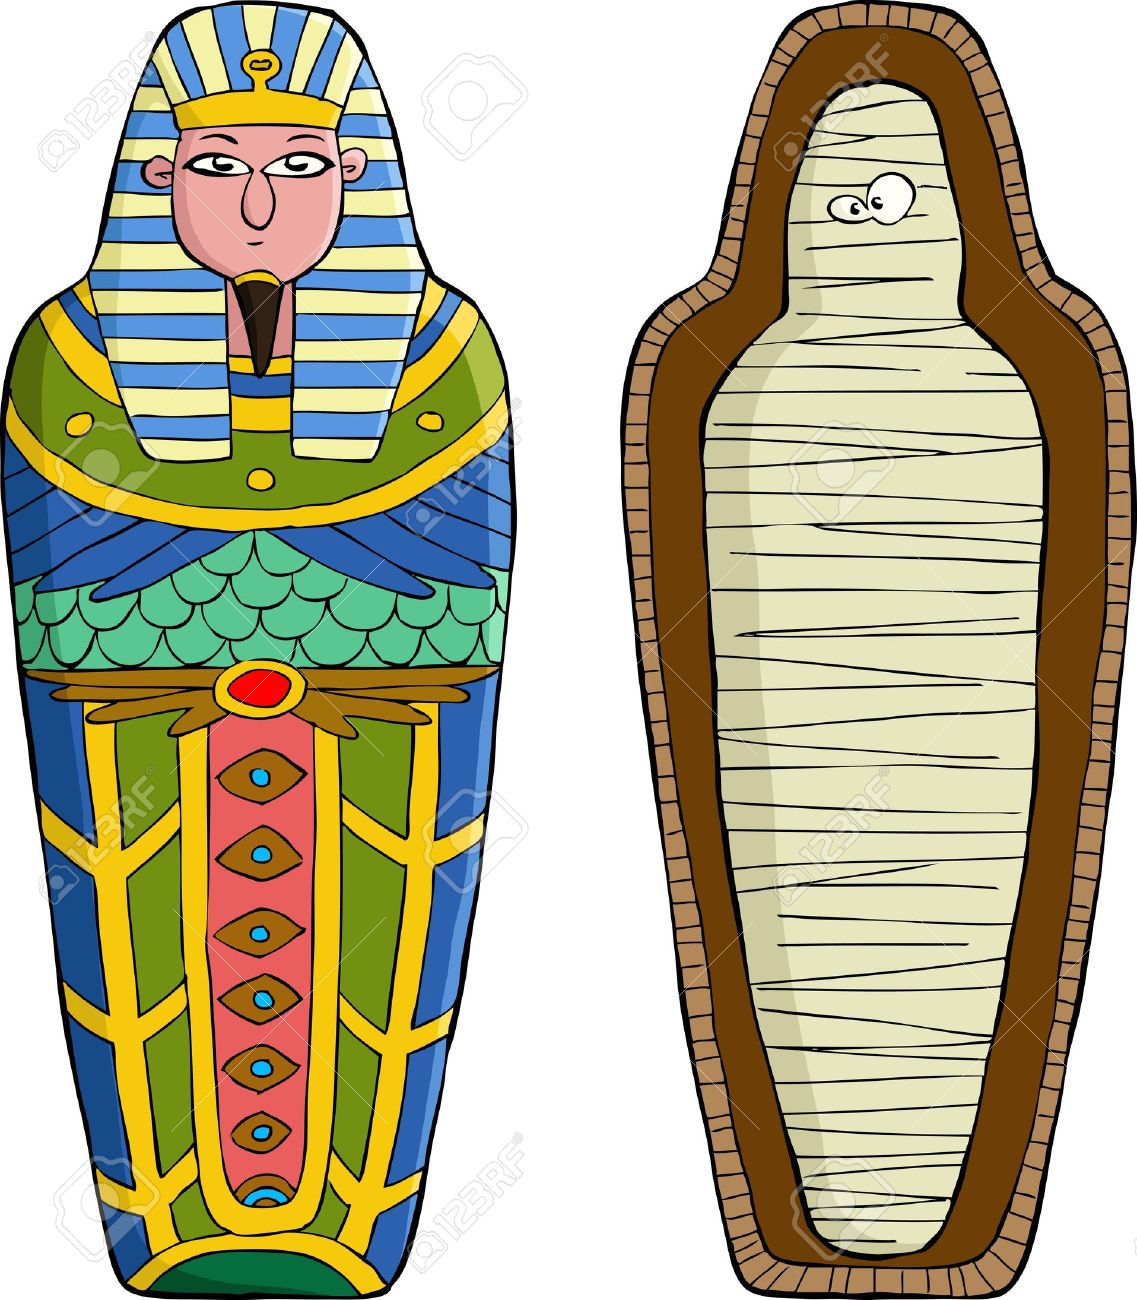 Egypt clipart #2, Download drawings